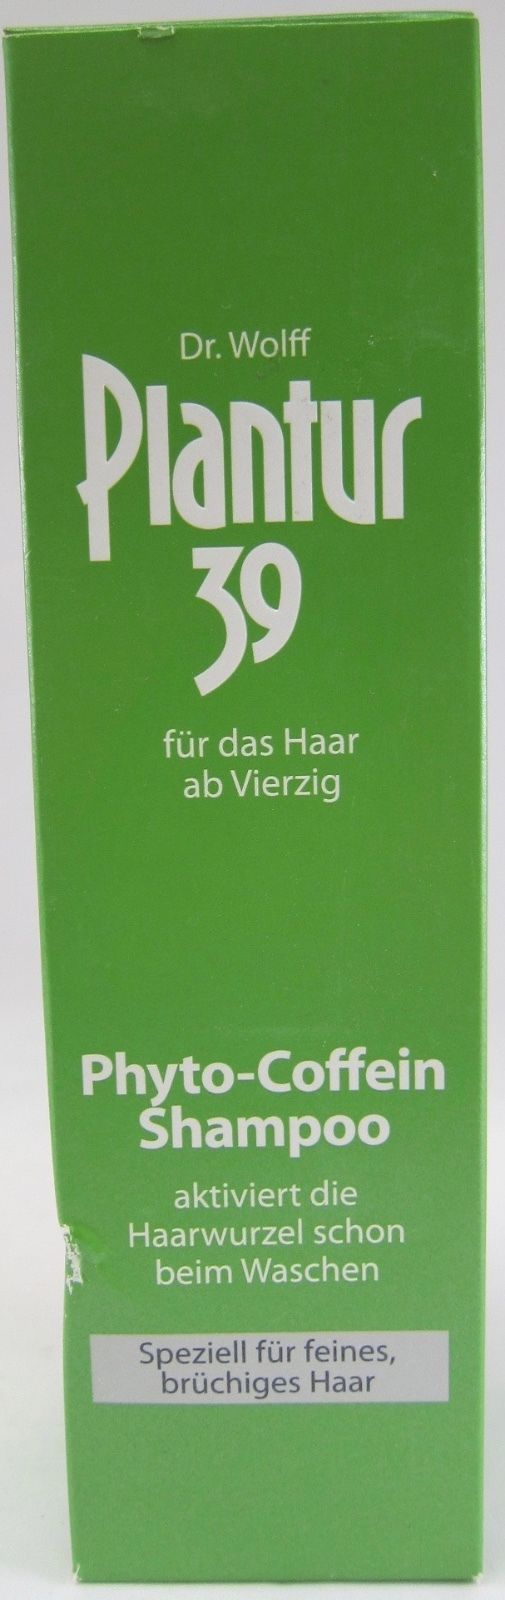 Plantur 39 Caffeine Shampoo for fine/brittle hair 250ml - Made in Germany -